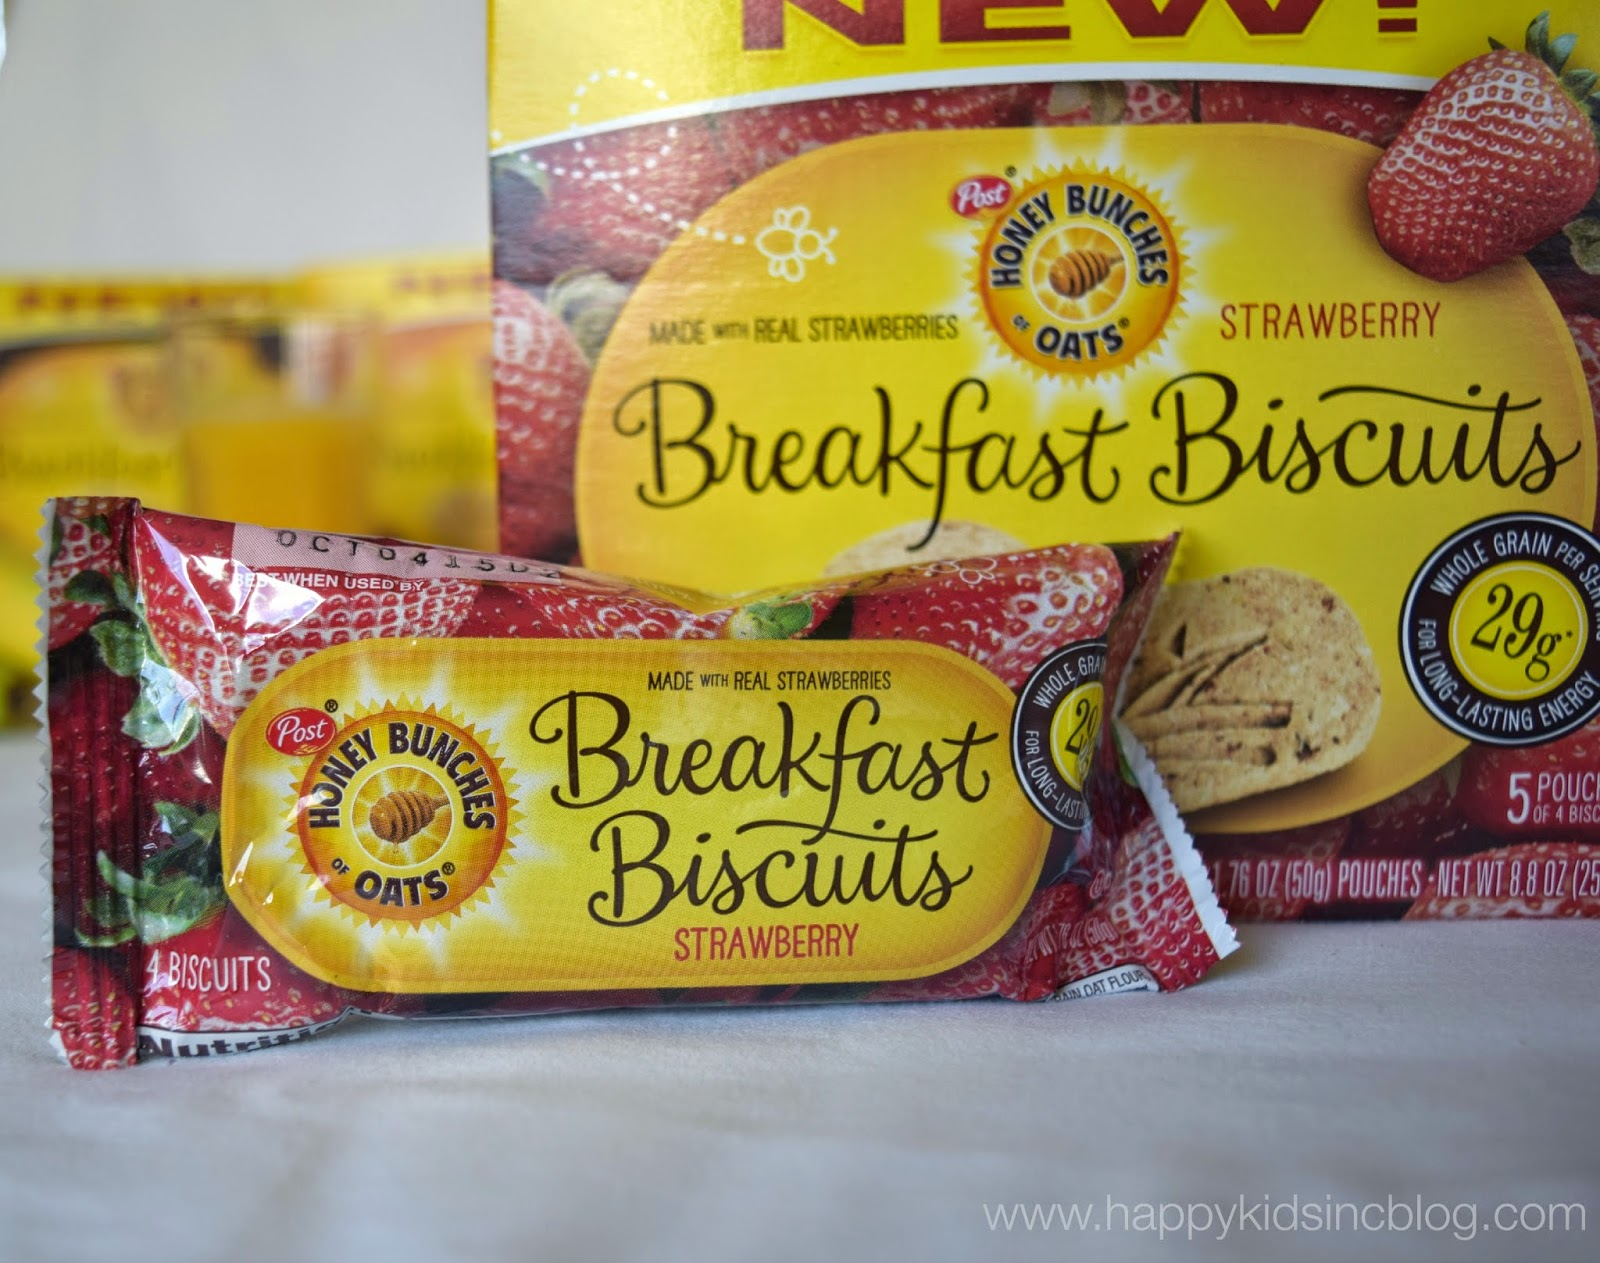 Honey Bunches of Oats Breakfast Biscuits